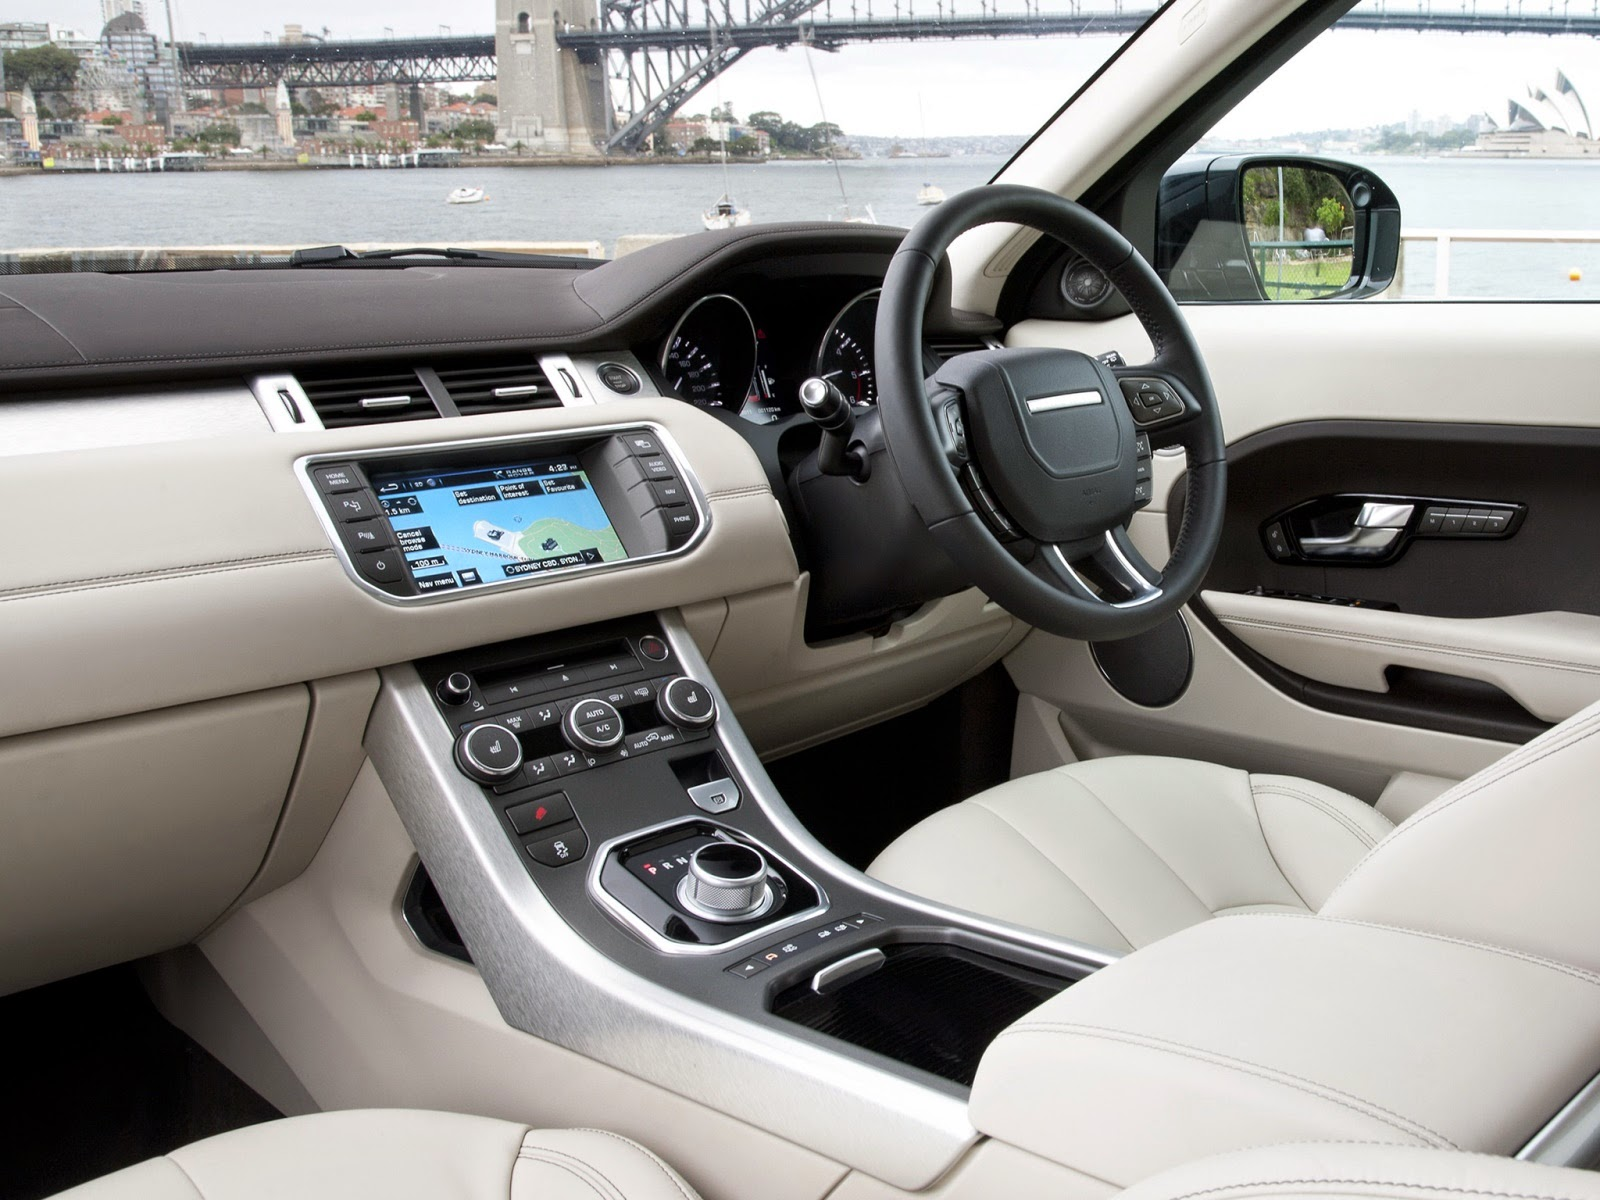 19 Range Rover Evoque – The ultimate luxury pact crossover